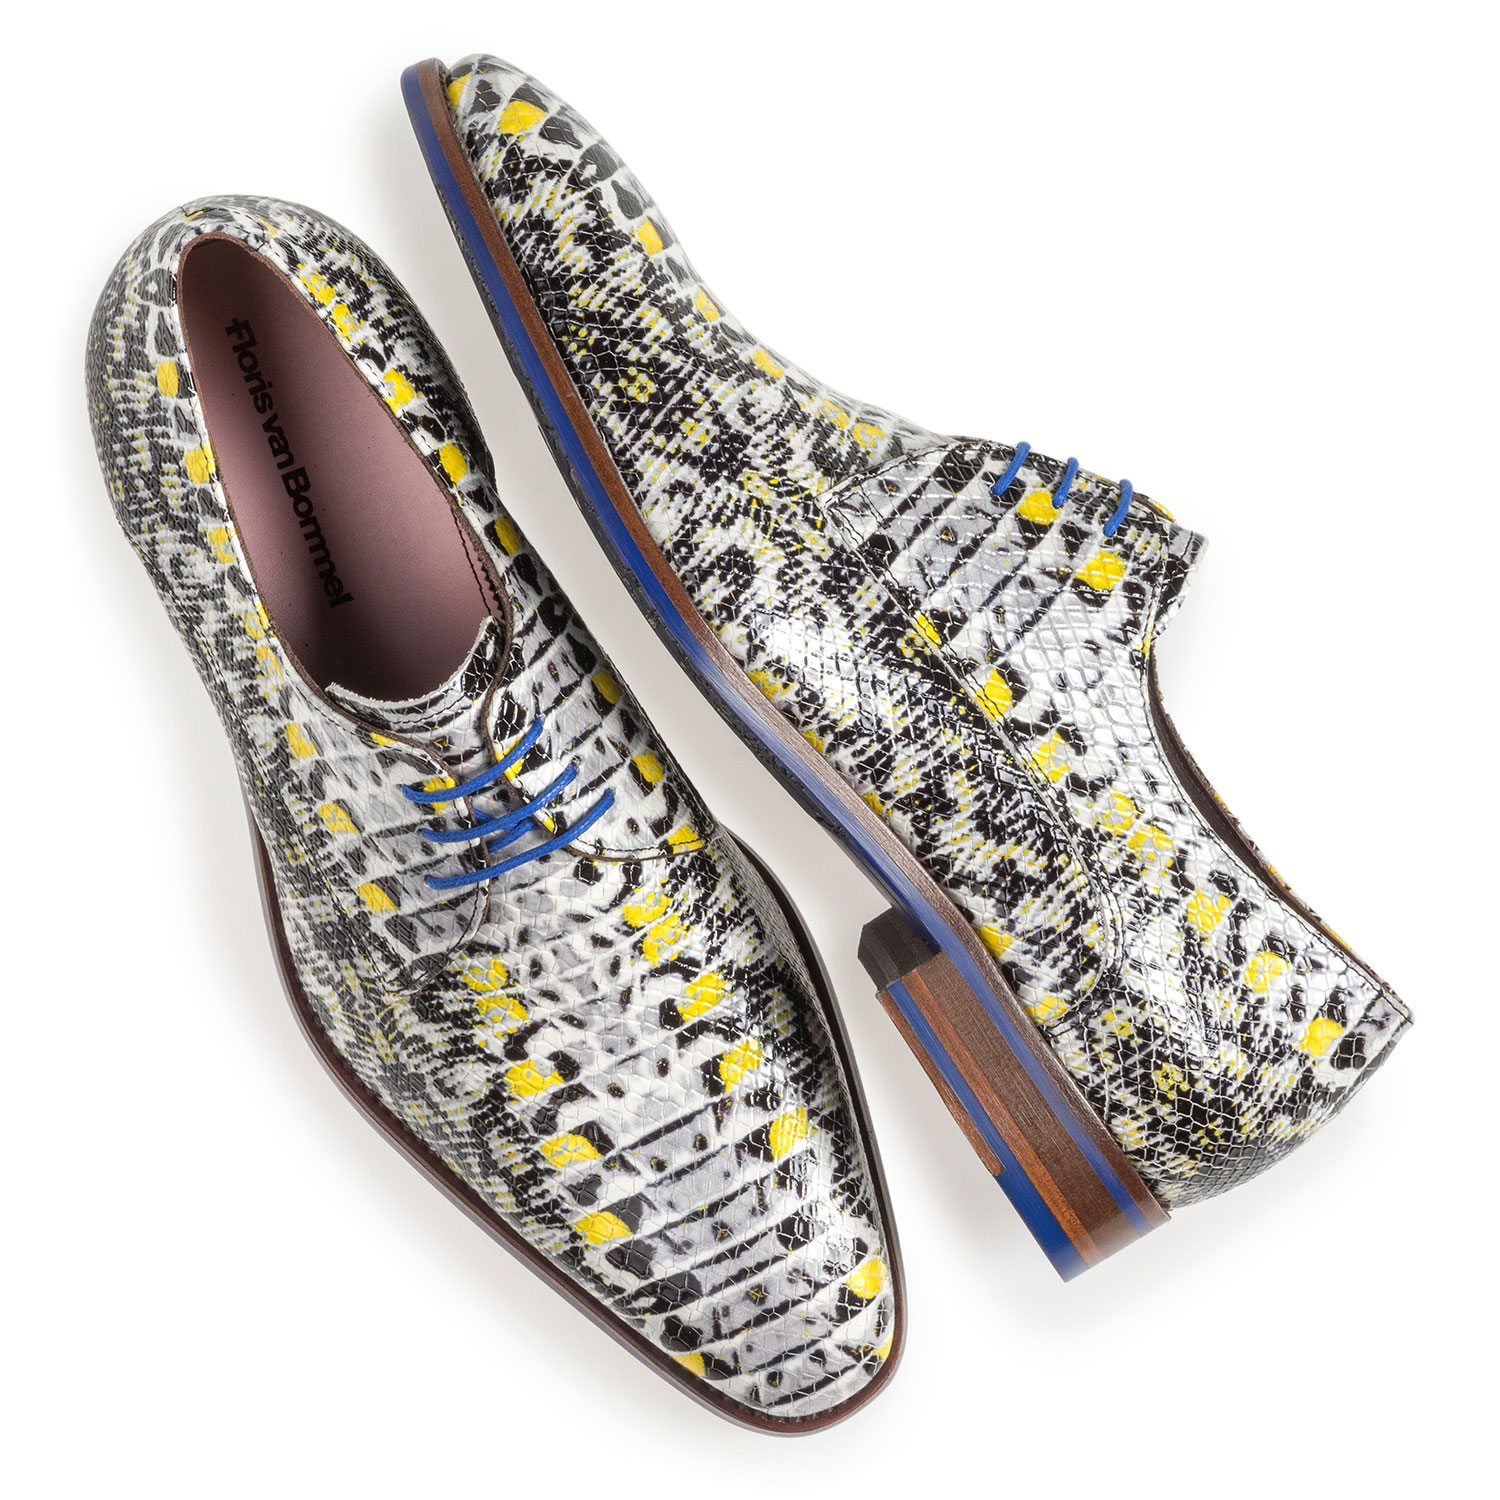 18346/05 - Yellow patent leather lace shoe with snake print